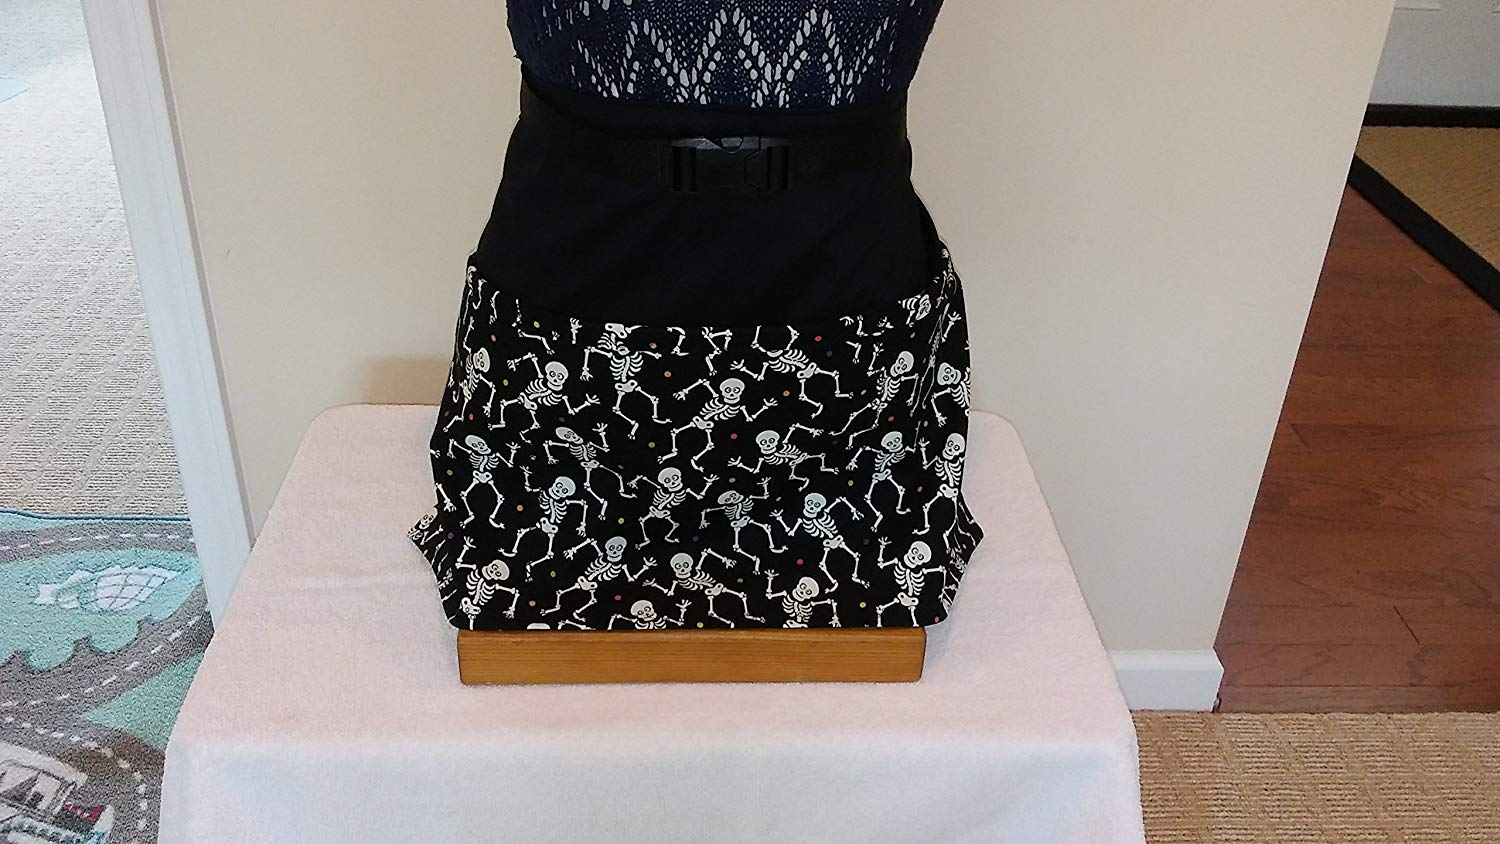 ADJUSTABLE NO - TIE APRON/Skeletons that GLOW IN THE DARK/Halloween-black and White/3 Lined Pockets Waist Apron/One size fits most